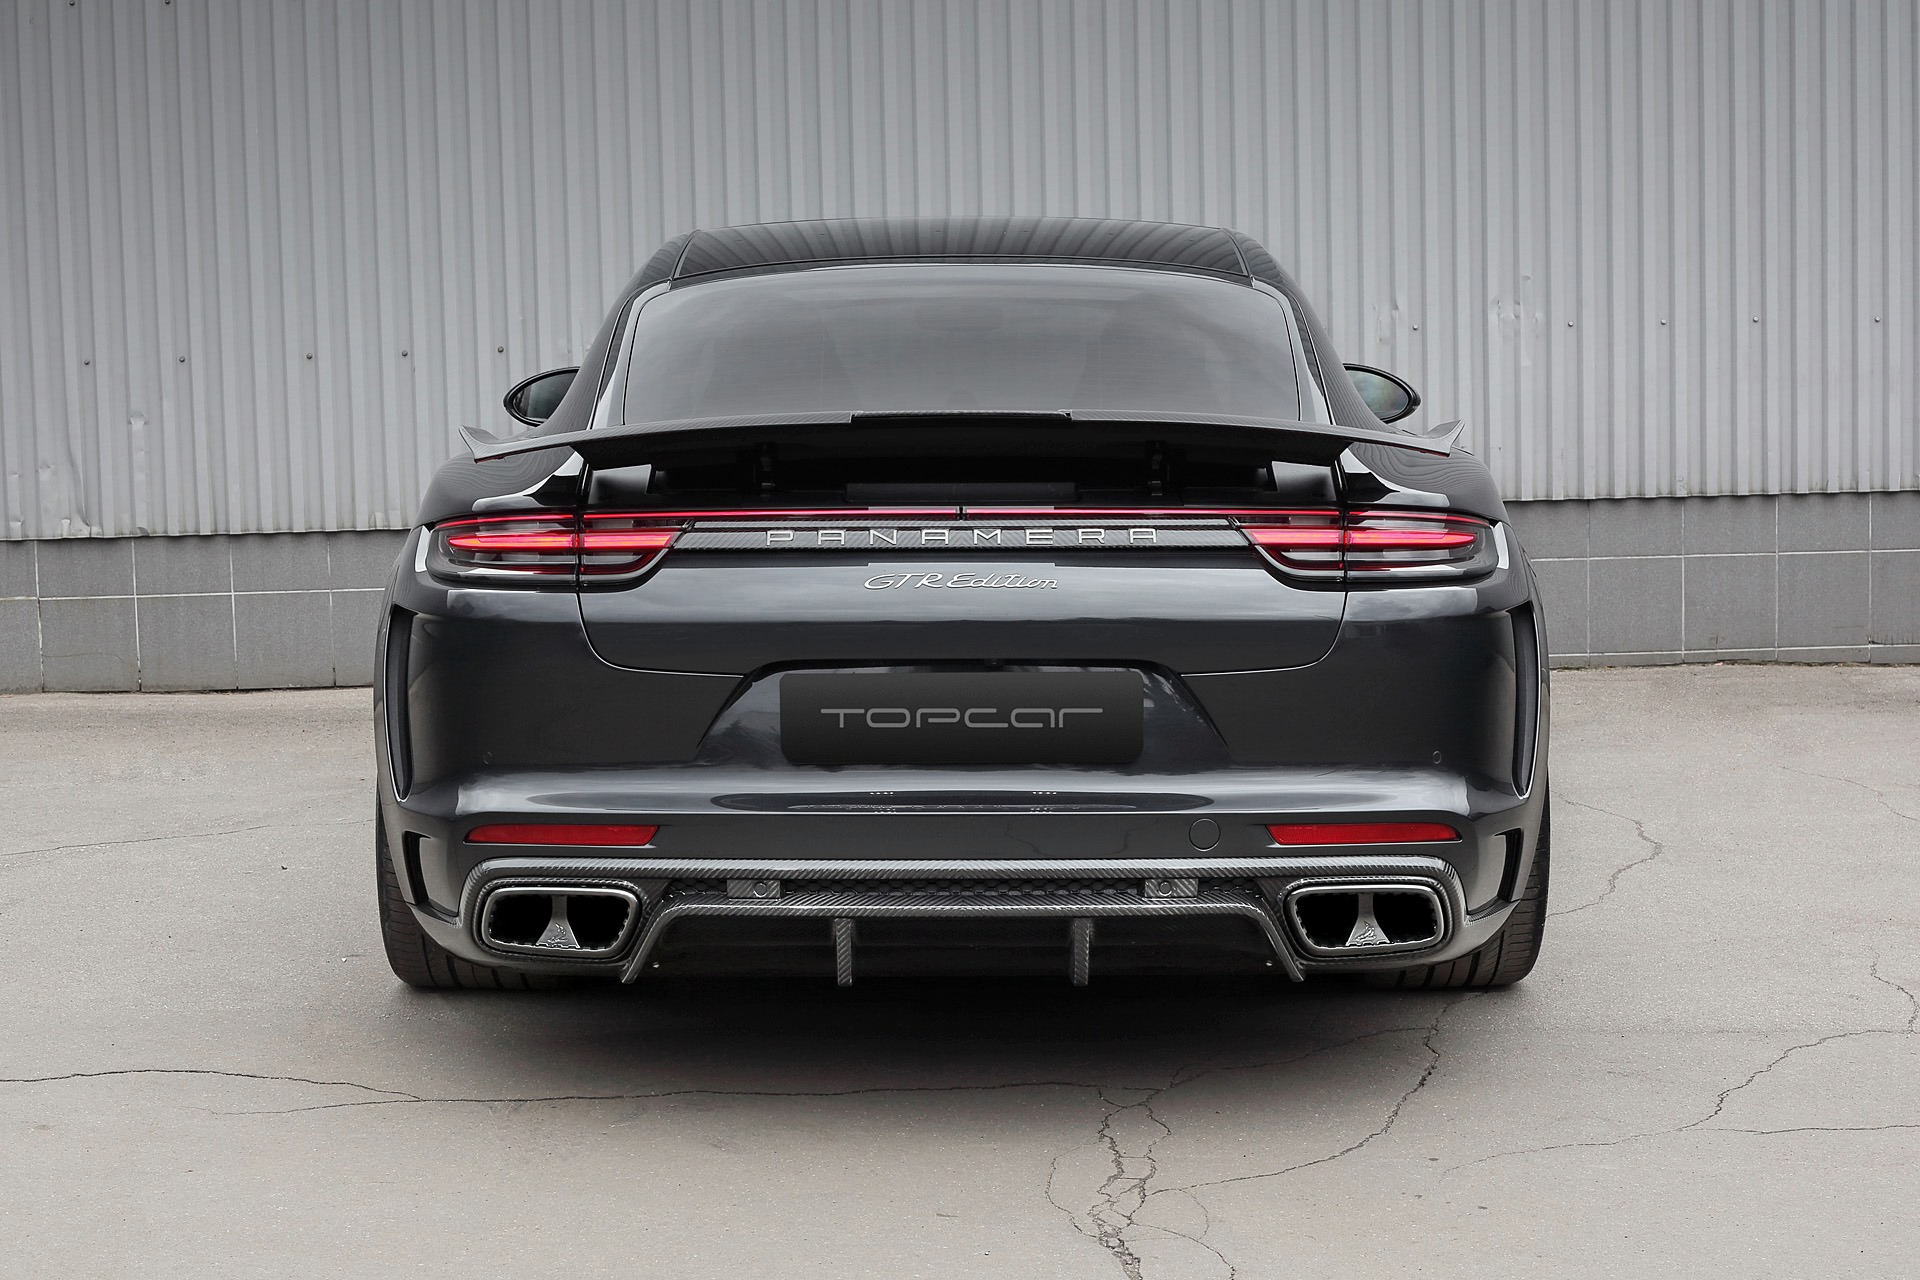 Porsche Panamera Turbo Rear